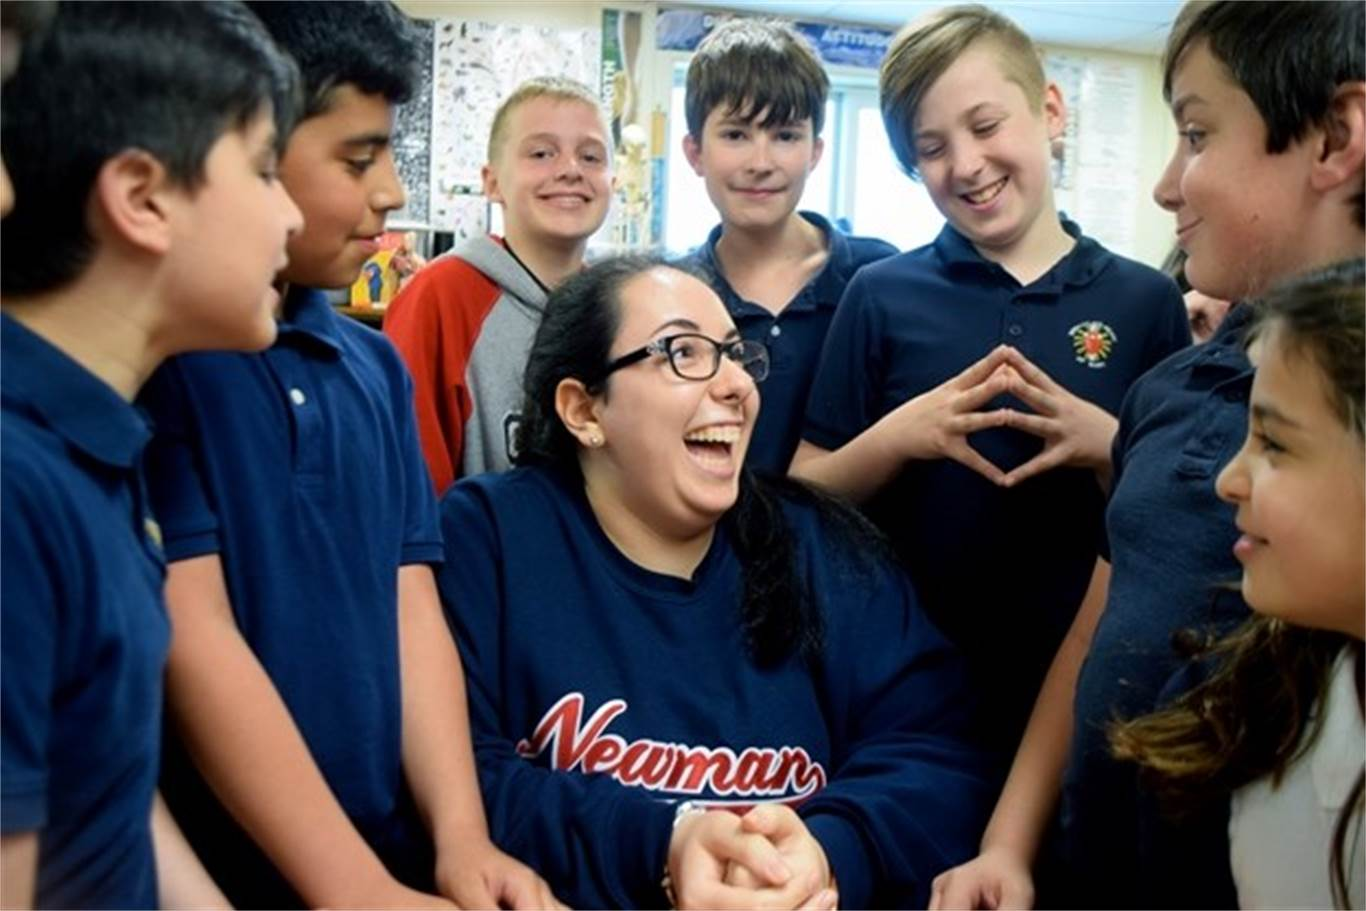 Lucia Marchionda, middle, hangs out with Grade 6 students at St. Gabriel Catholic Elementary School, where she helps out five times a week in the afternoons. The 17-year-old Cardinal Newman Catholic Secondary School Grade 12 student, who has accumulated more than 3,000 volunteer hours, has been named Stoney Creek Chamber of Commerce's Junior Citizen of the Year for 2017. Photo by Laura Lennie, Stoney Creek News.